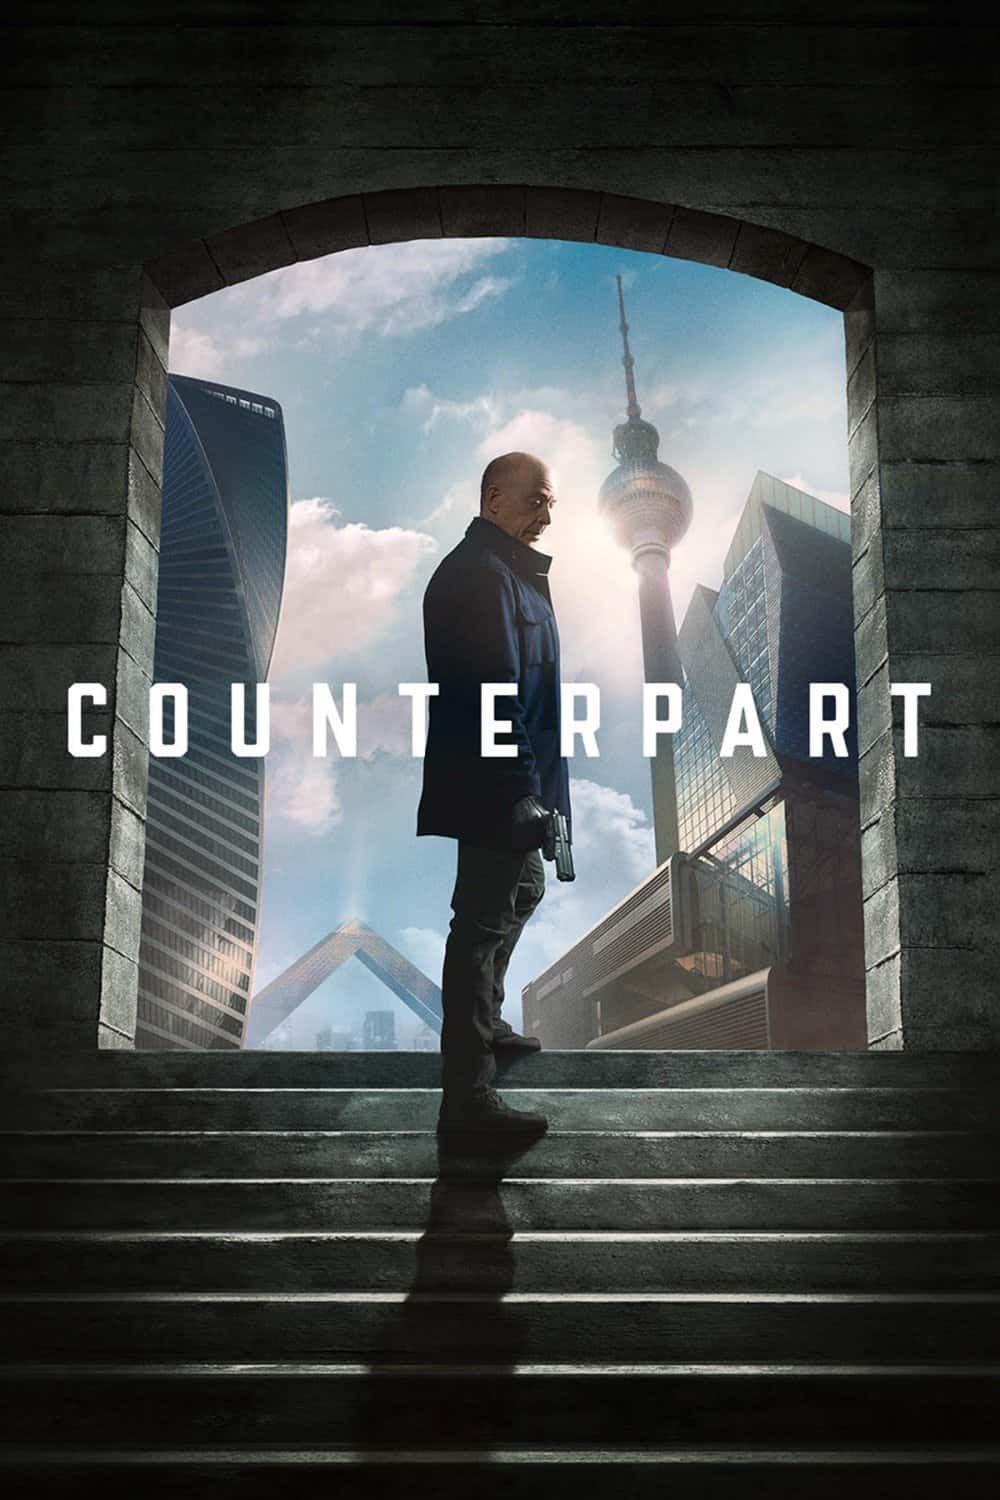 Counterpart, 2017